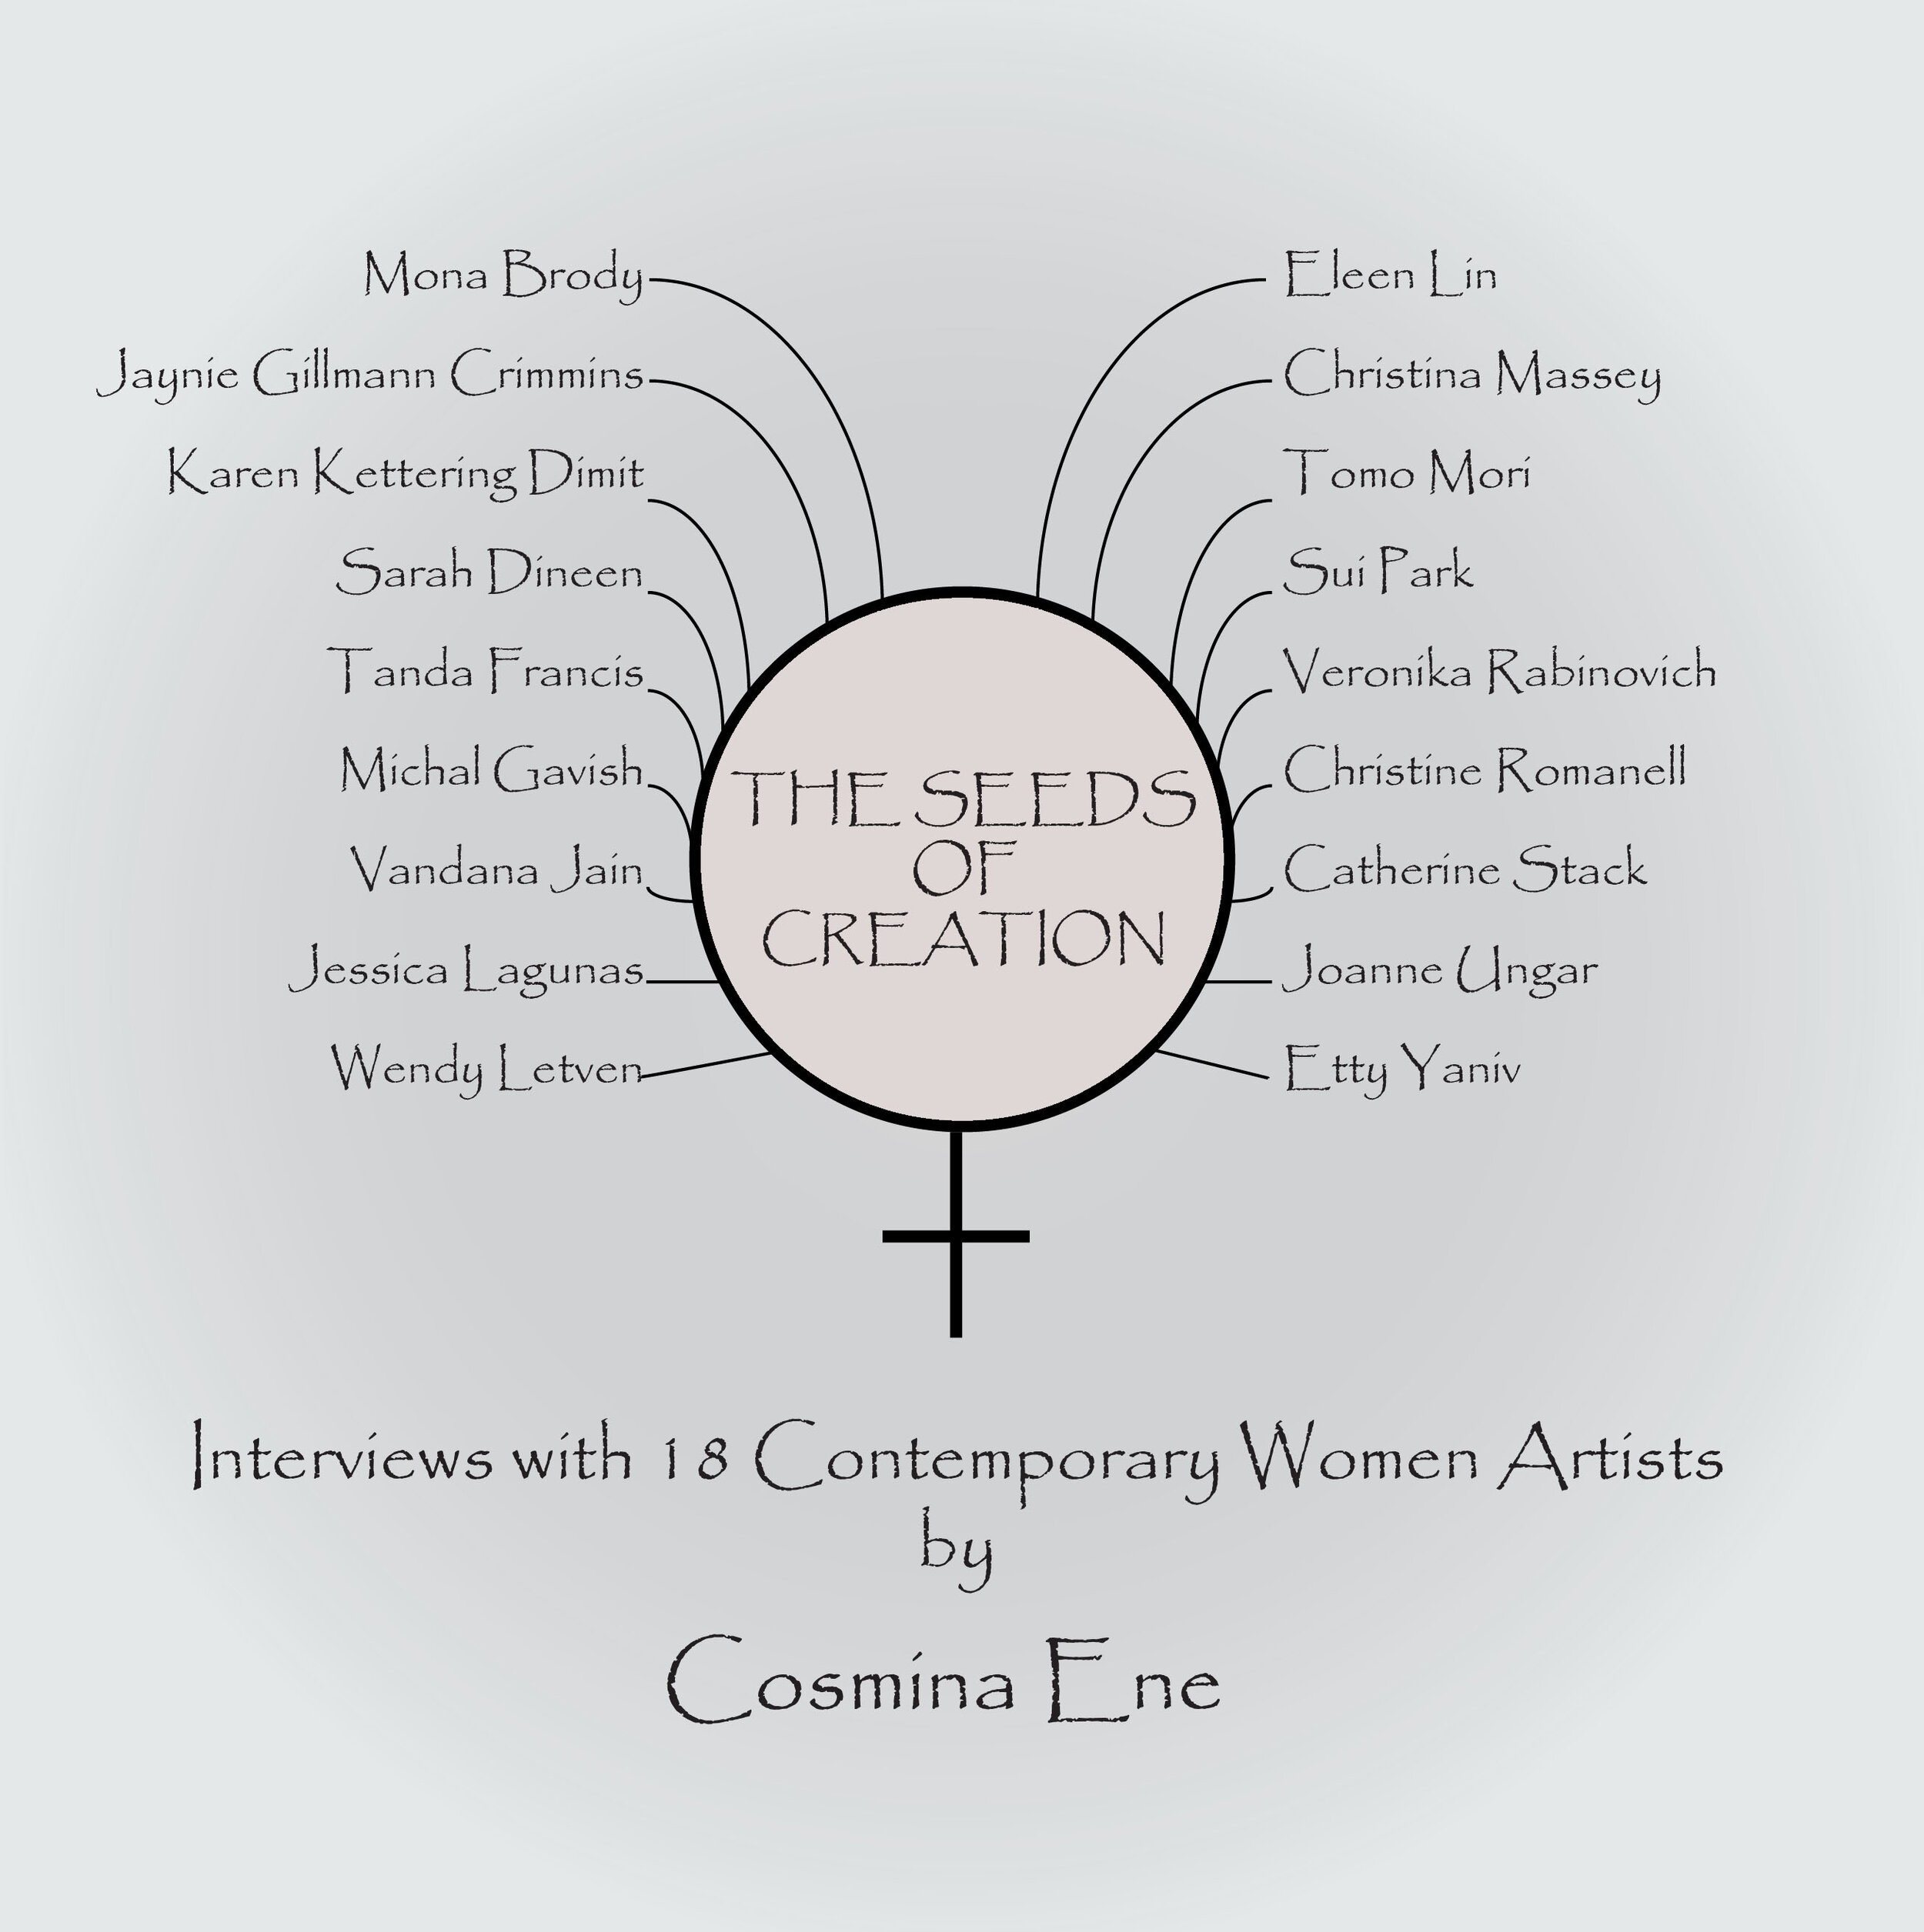 The Seeds of Creation-18Artists_COVER-C34B  FRONT (1).jpg